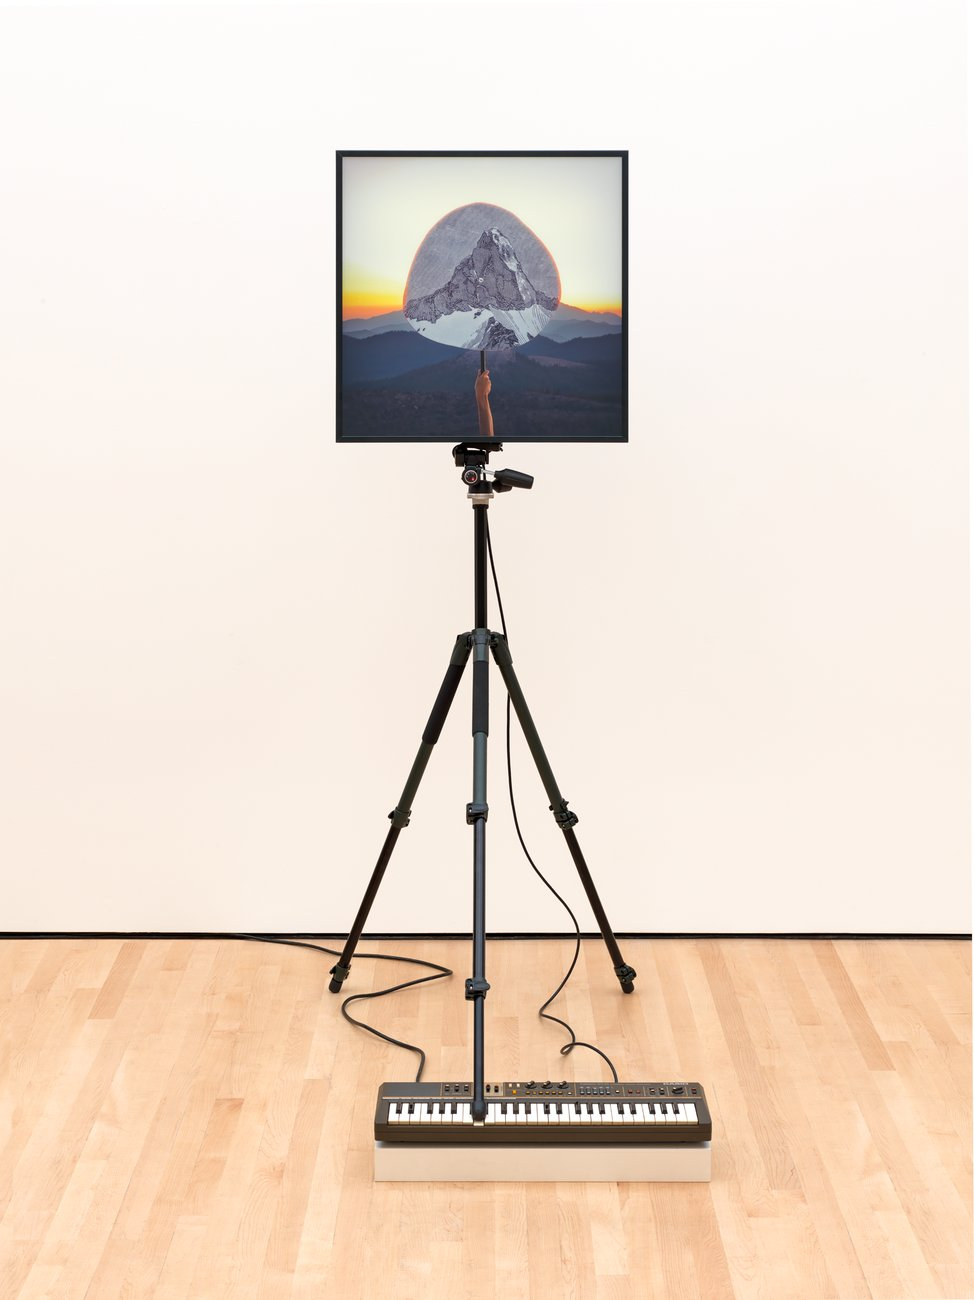 An image of a mountain mounted on a tripod standing on top of an electric keyboard, Walker Soundtracks